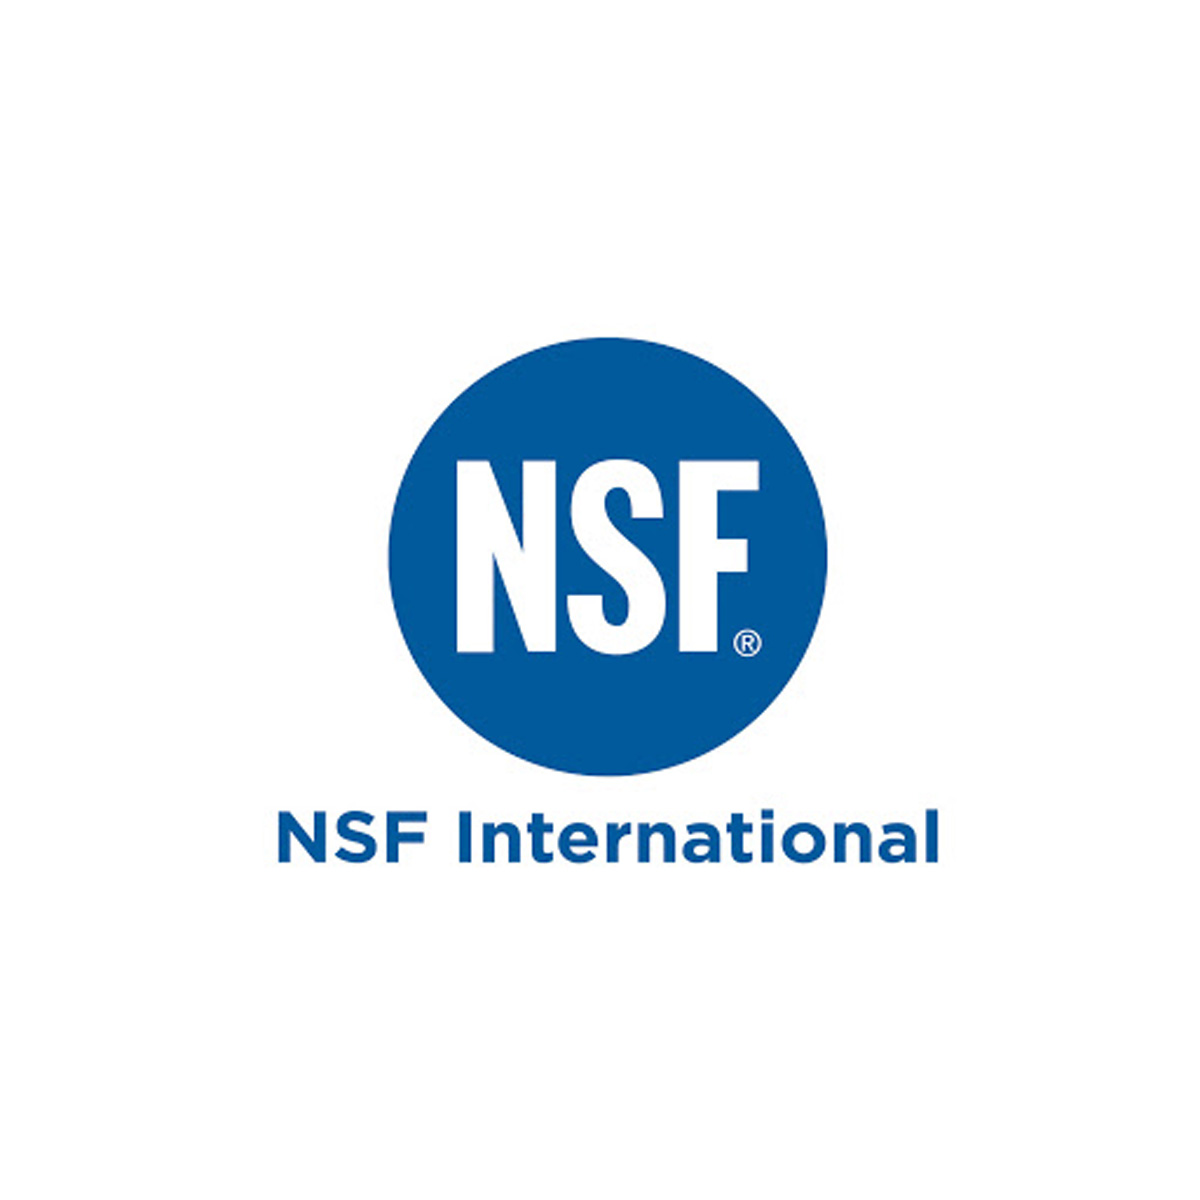 nsf international 1